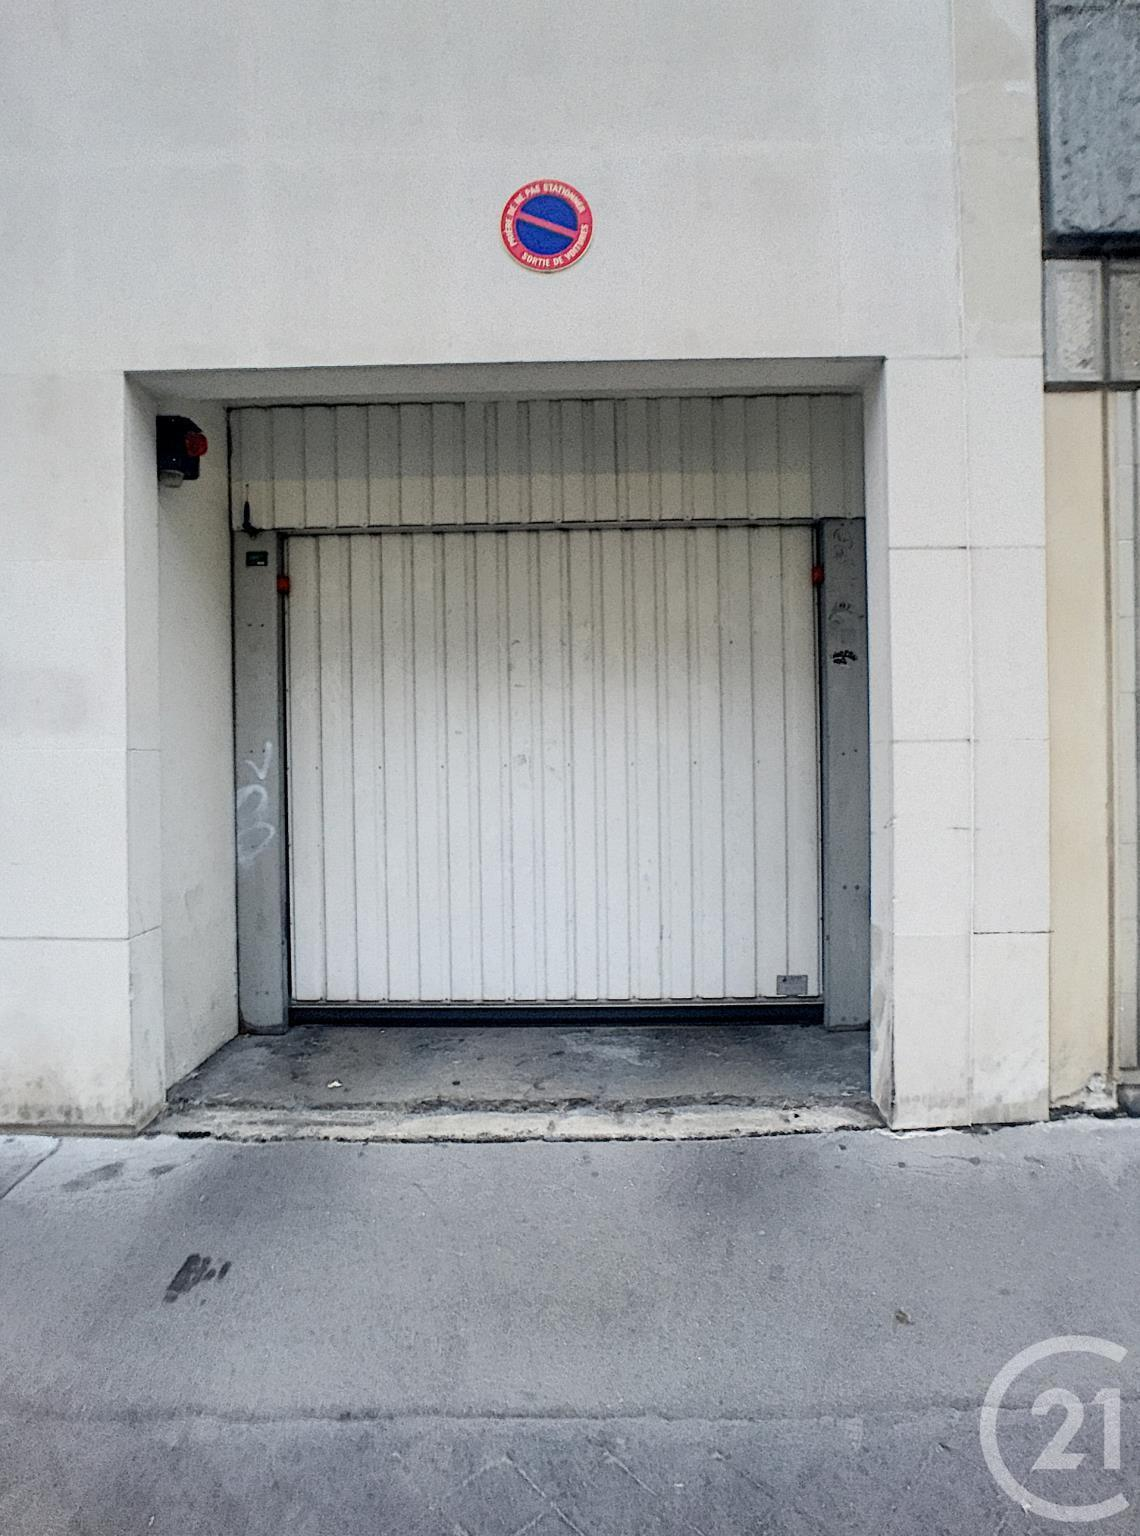 Parking à vendre - 10 m2 - PARIS - 75015 - ILE-DE-FRANCE